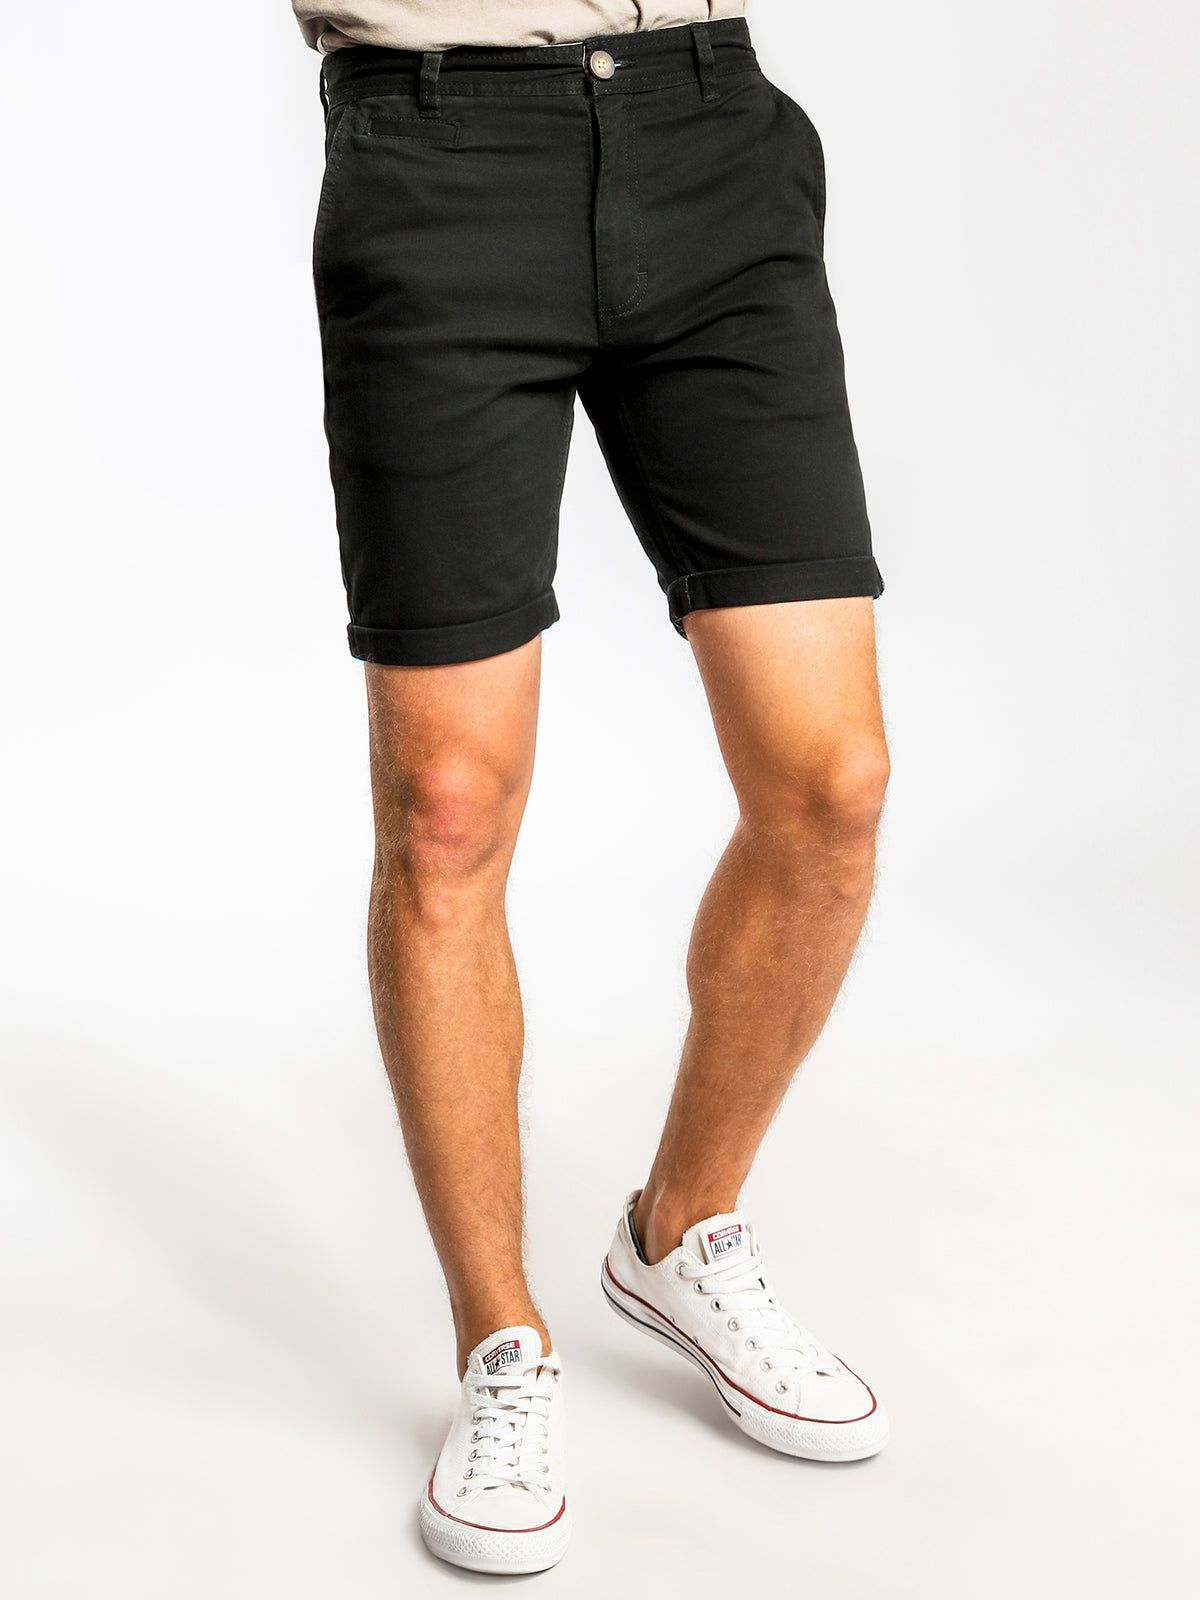 Malabar Chino Shorts in Black